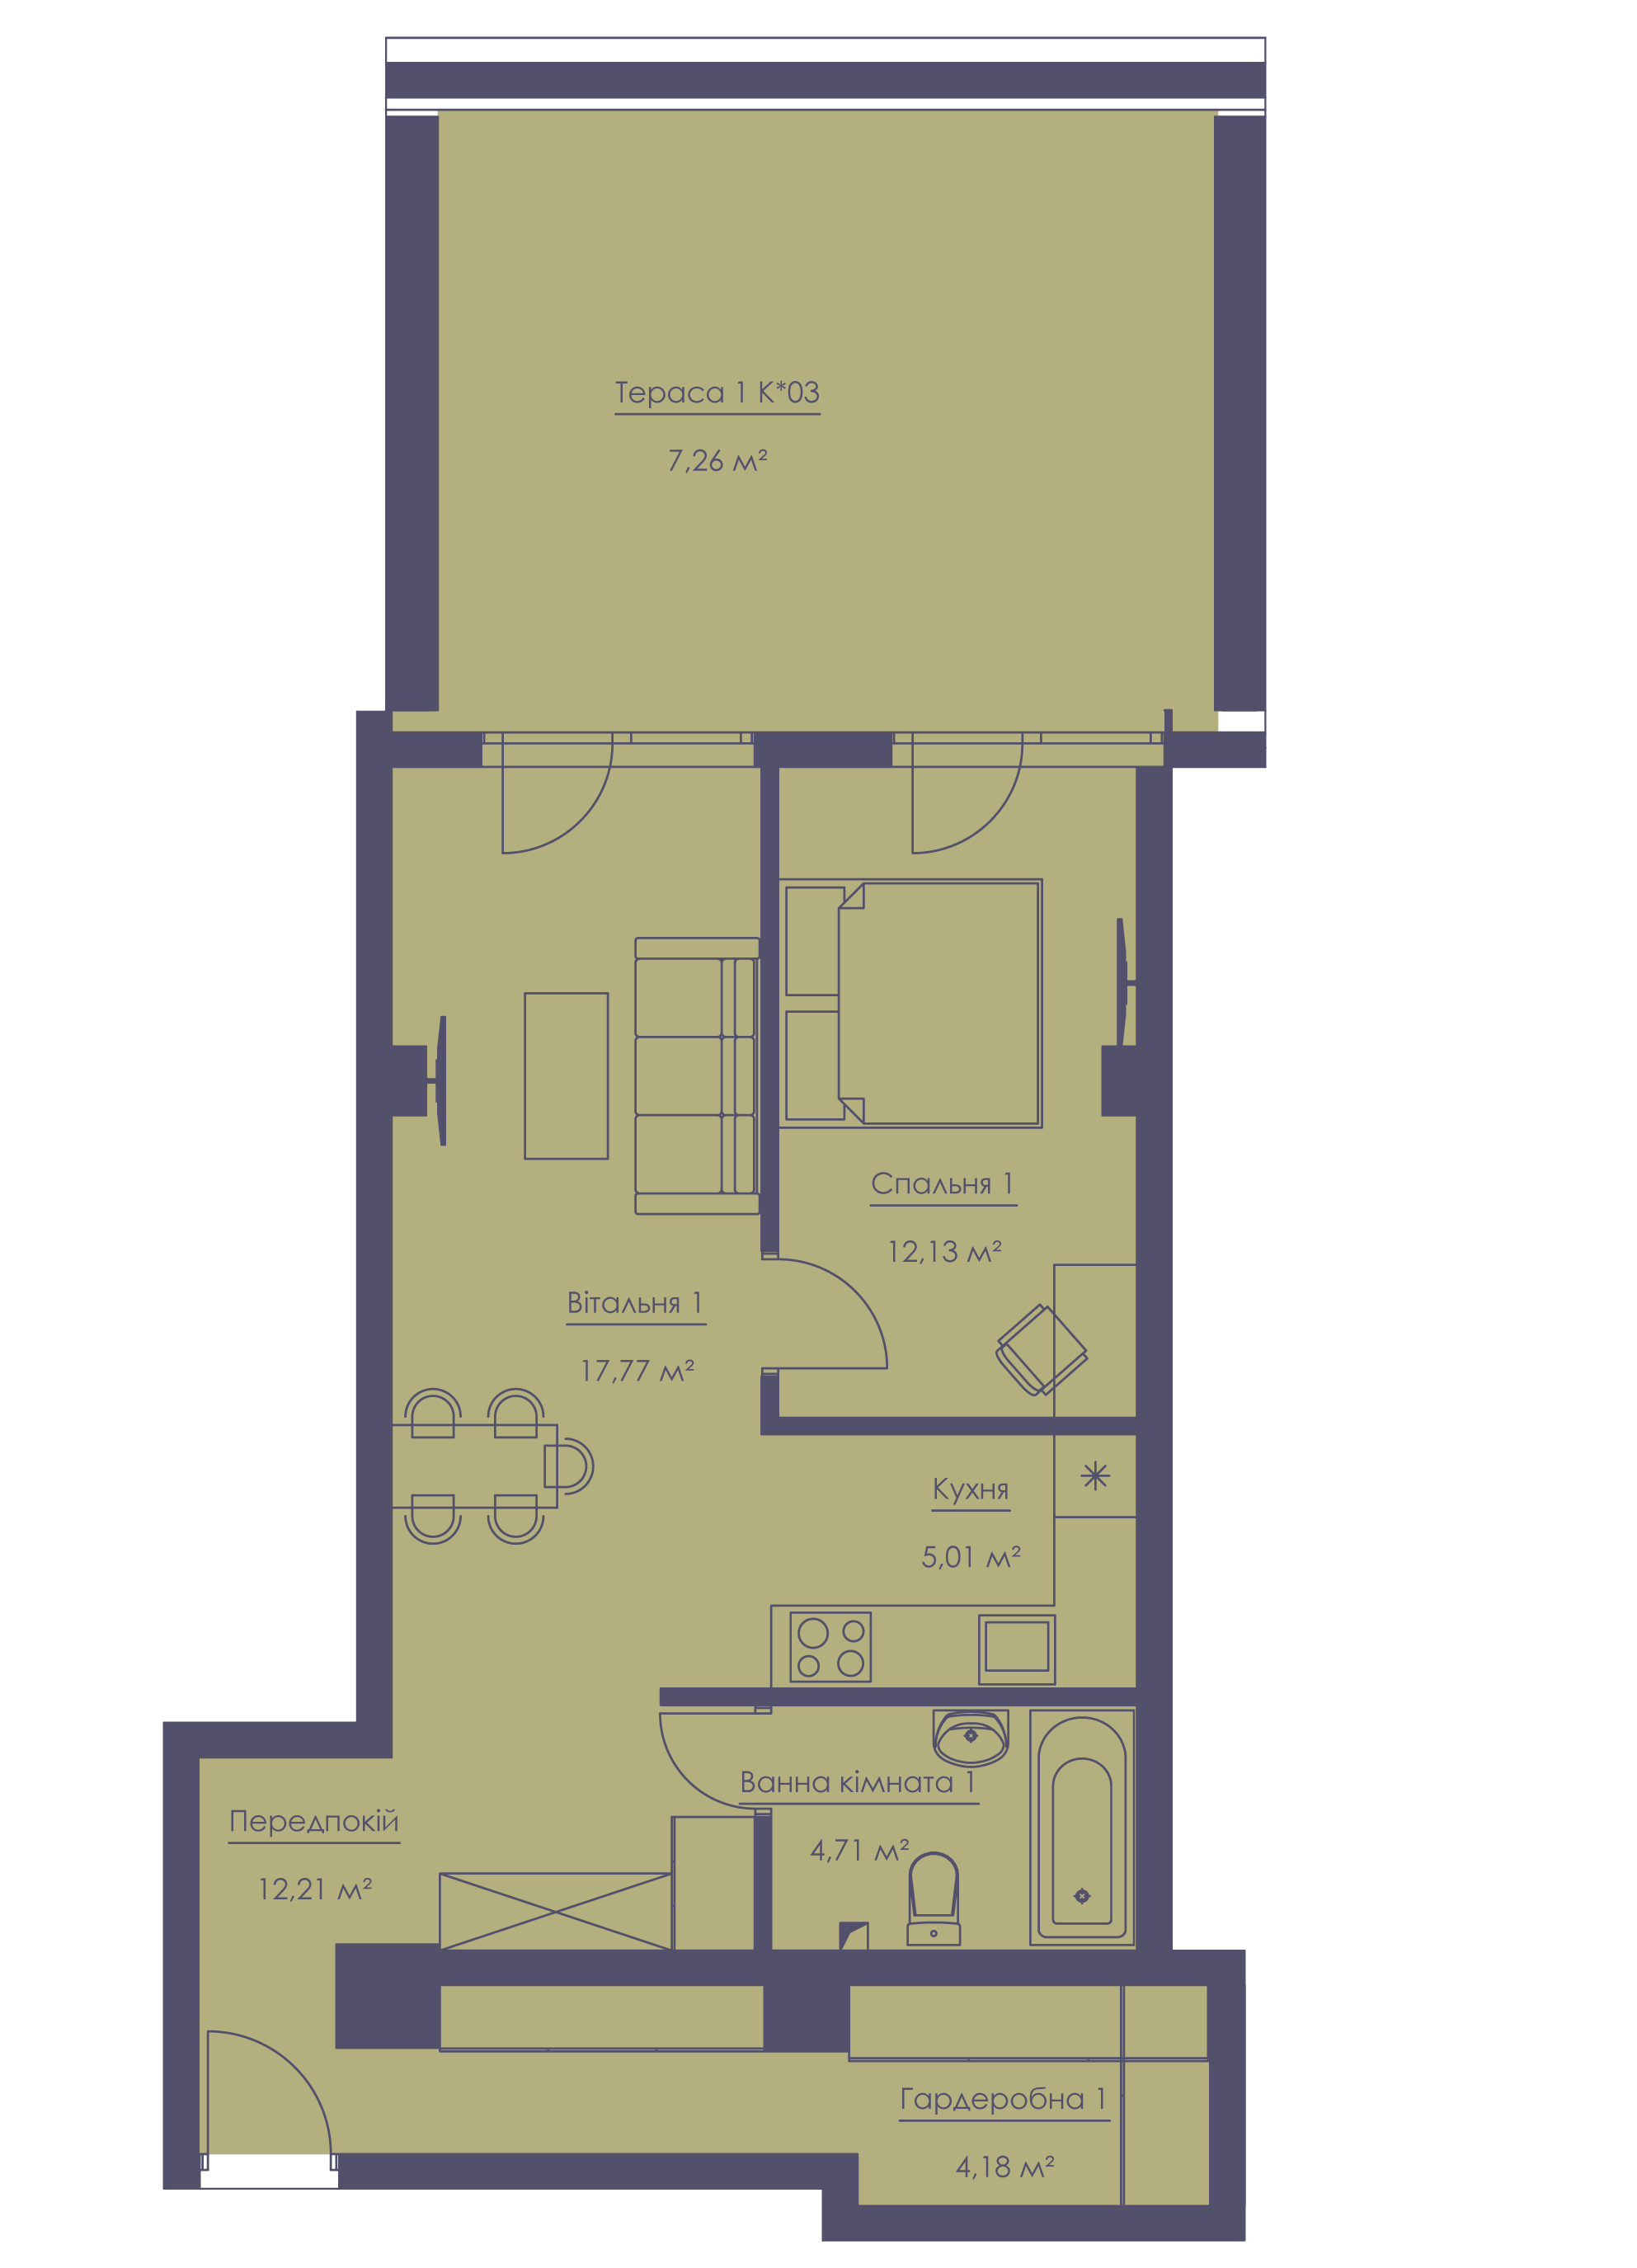 Apartment layout KV_7_1.2d_1_1_8-1